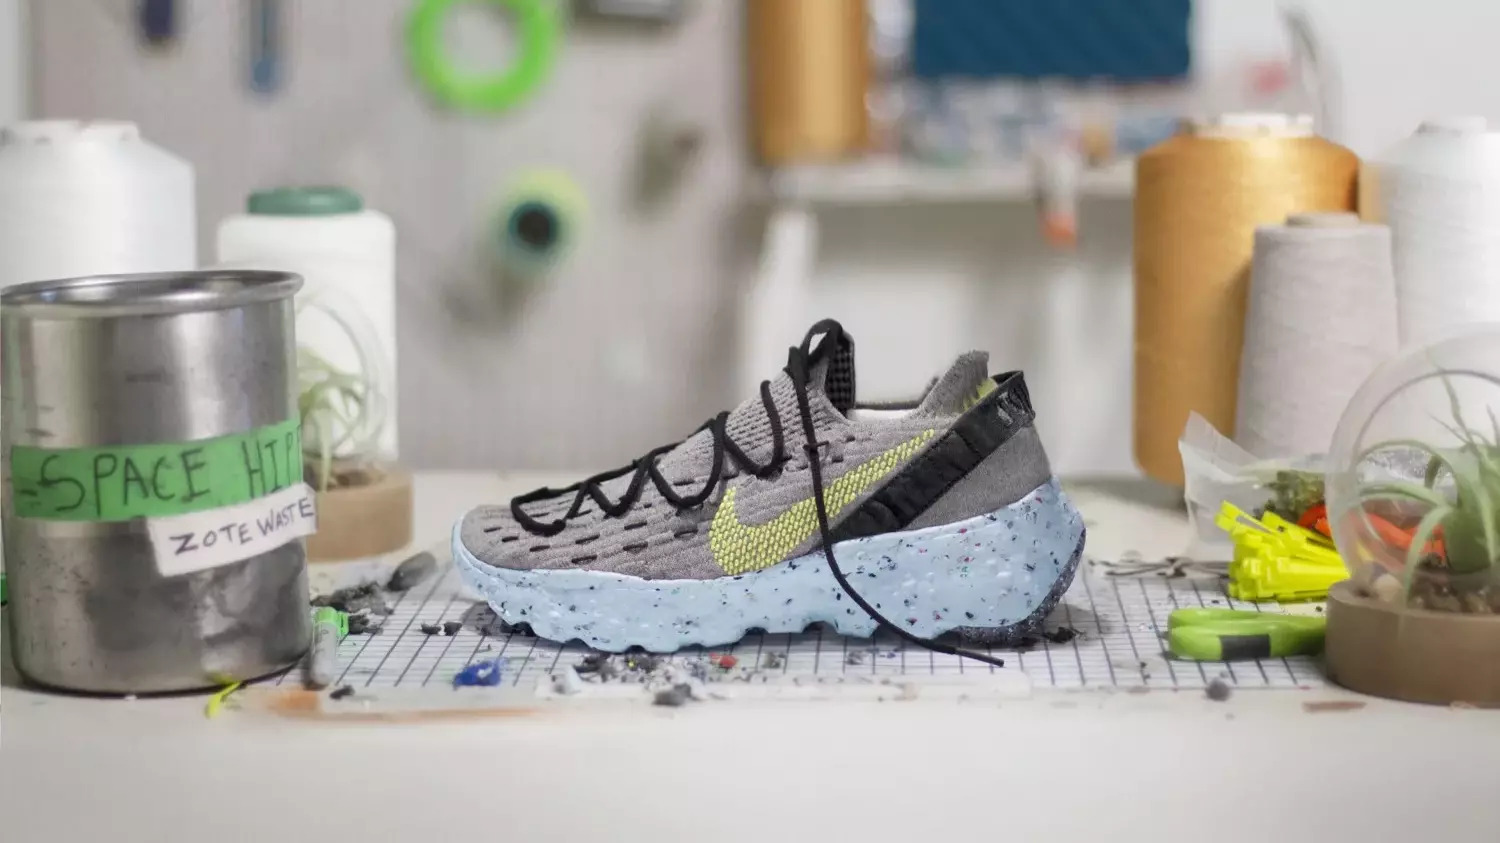 Space Hippie and Nike's road to #sustainability